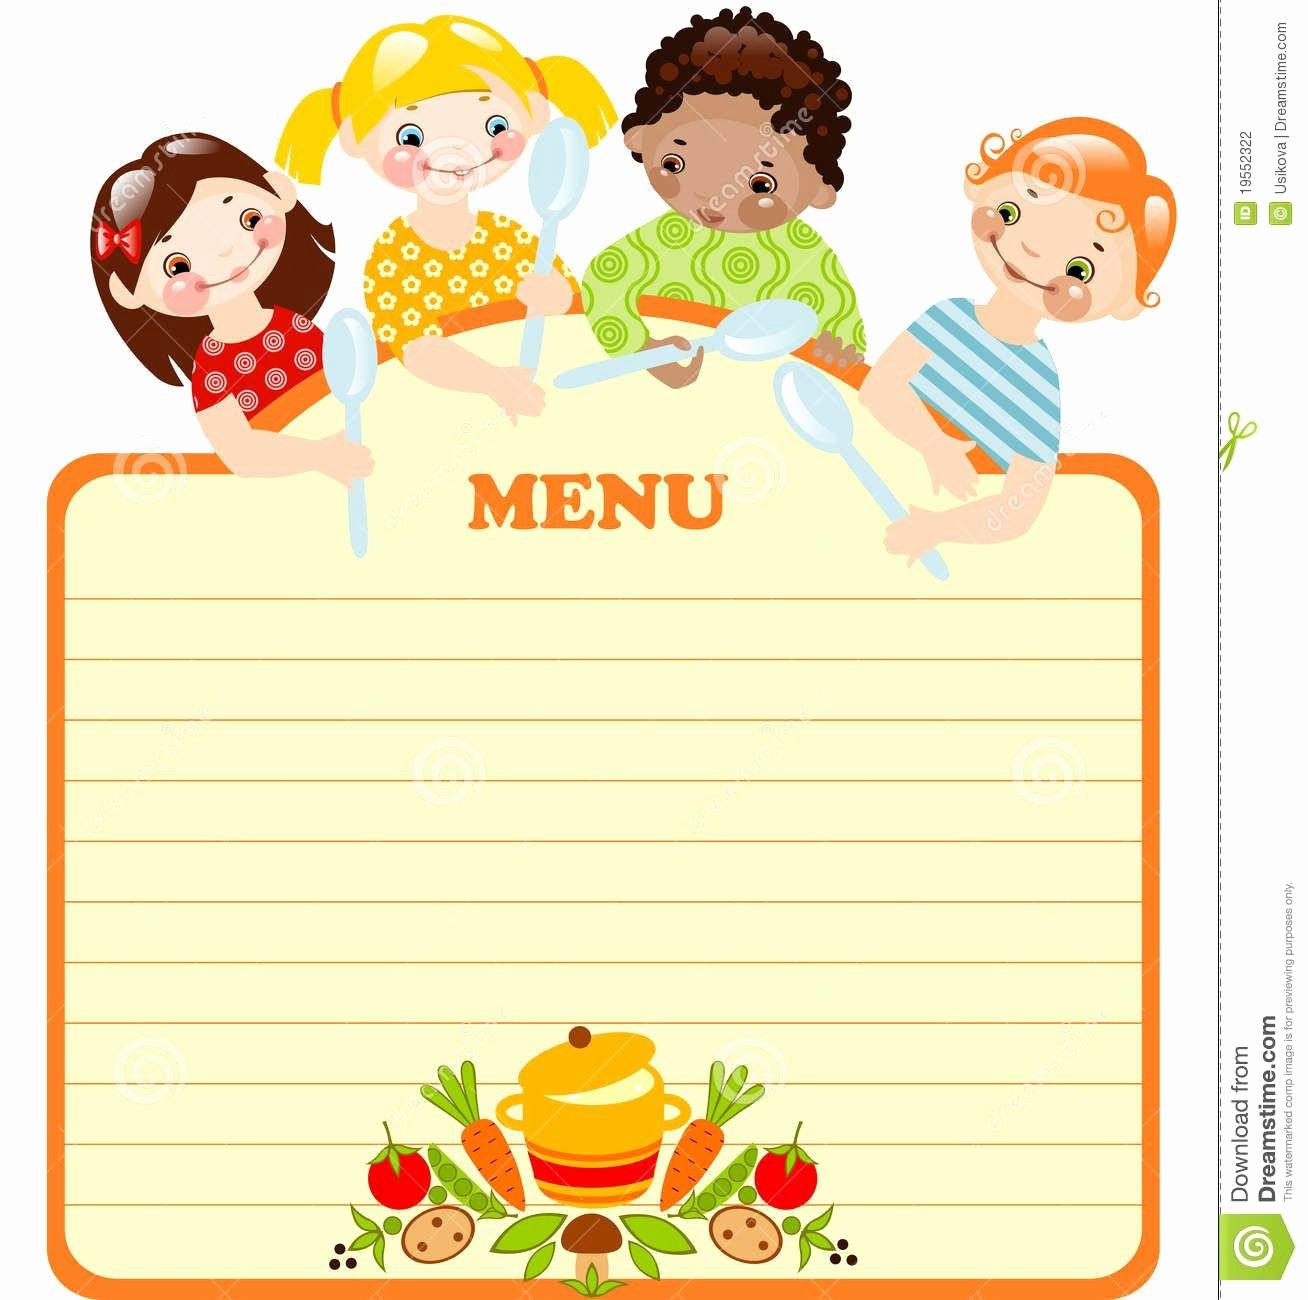 Blank Menu Template Lovely Blank Kids Menu Template Invitation Templates